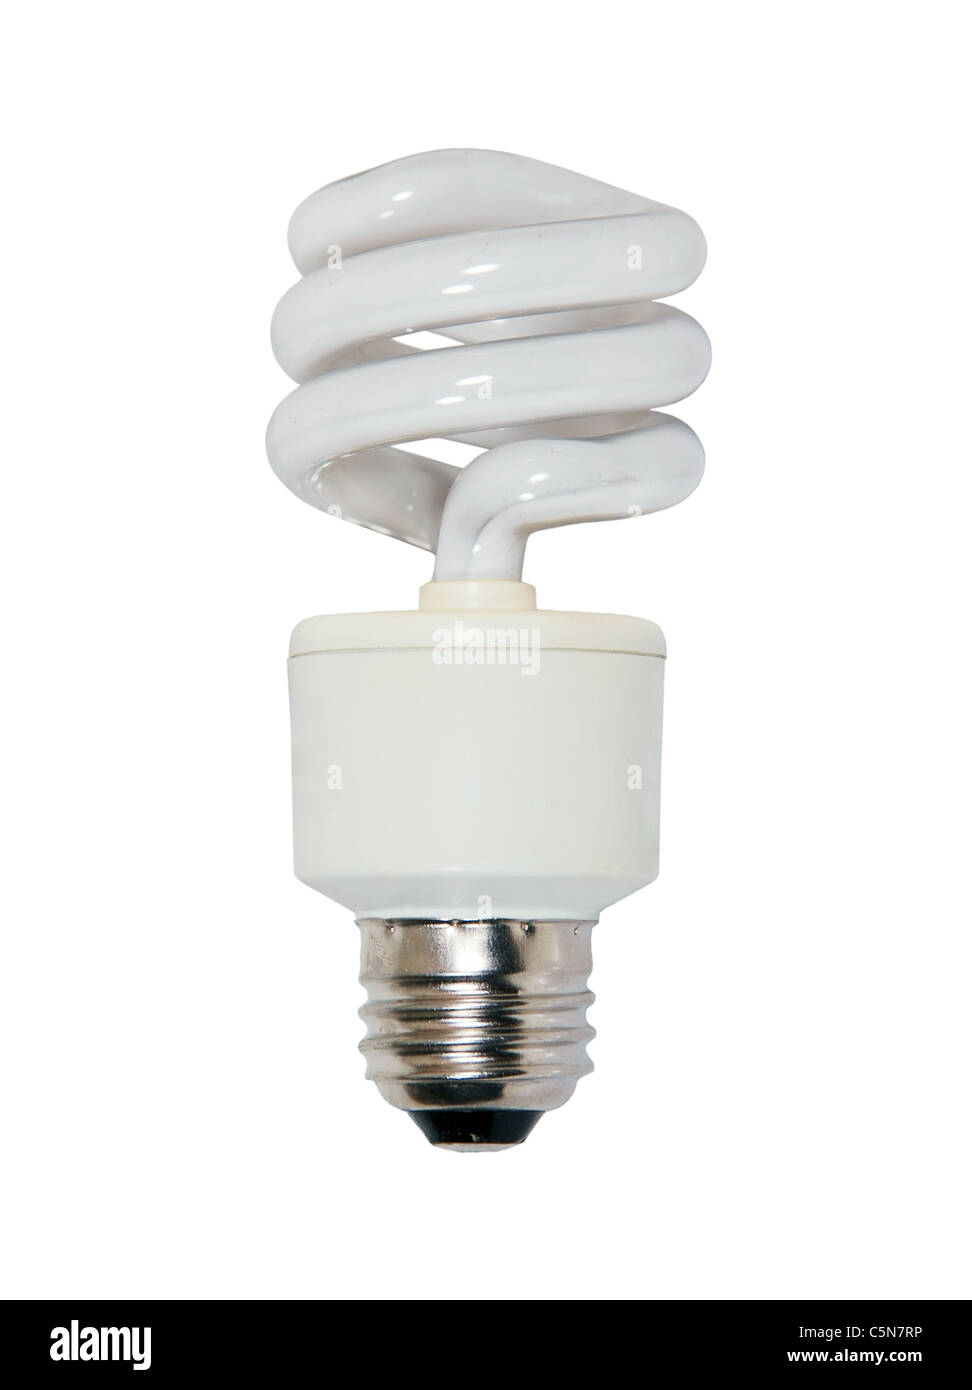 Spiral glass bulb light bulb used to light a room efficiently Stock Photo